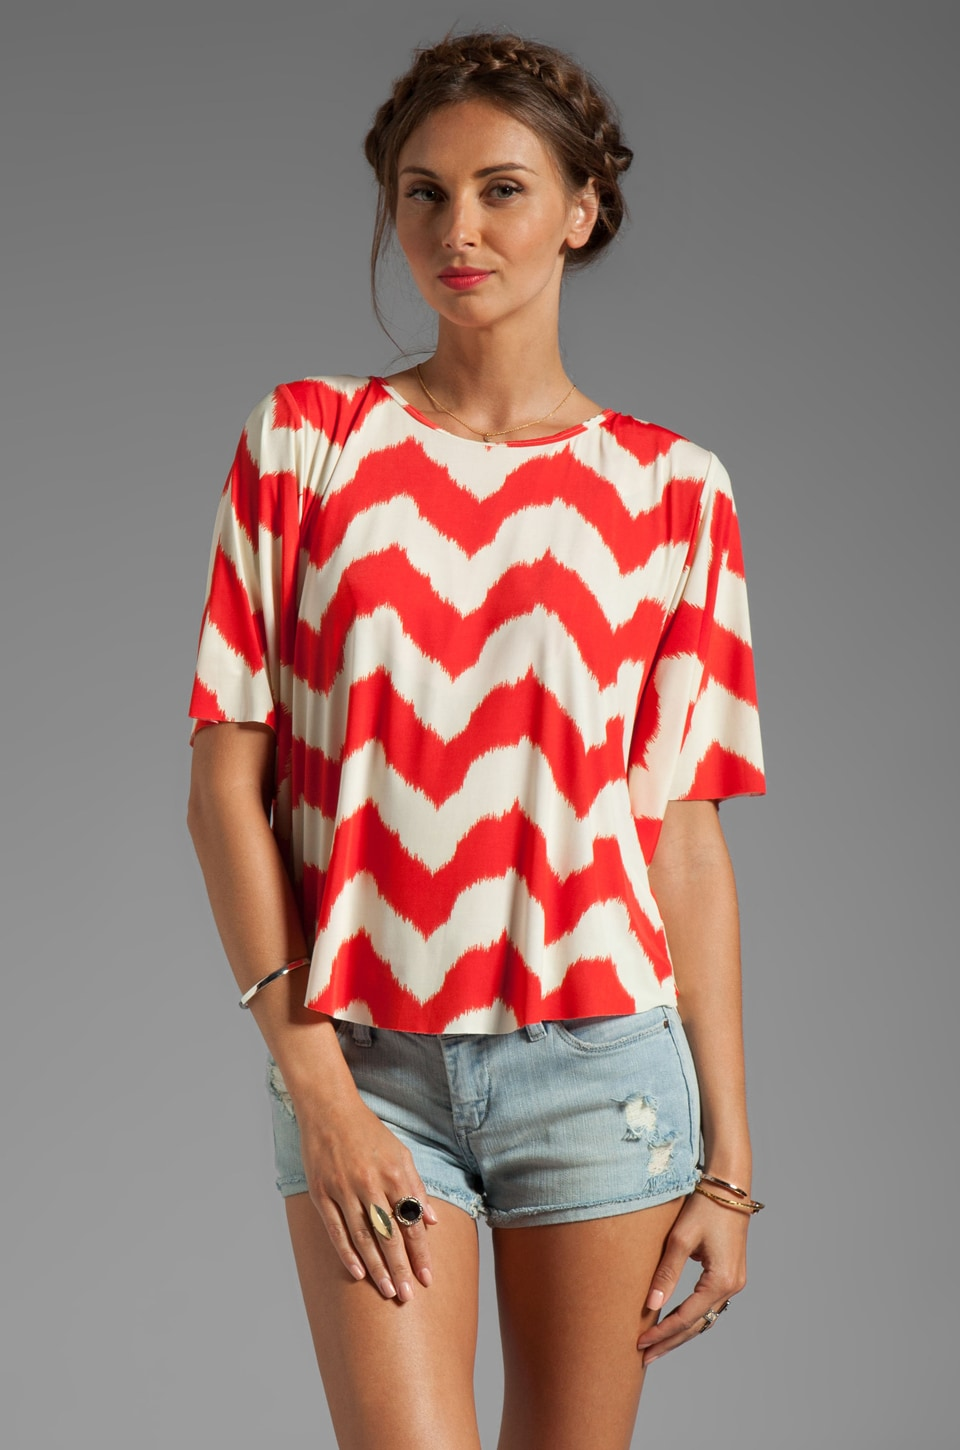 T-Bags LosAngeles Open Back Top in Warm Zig Zag